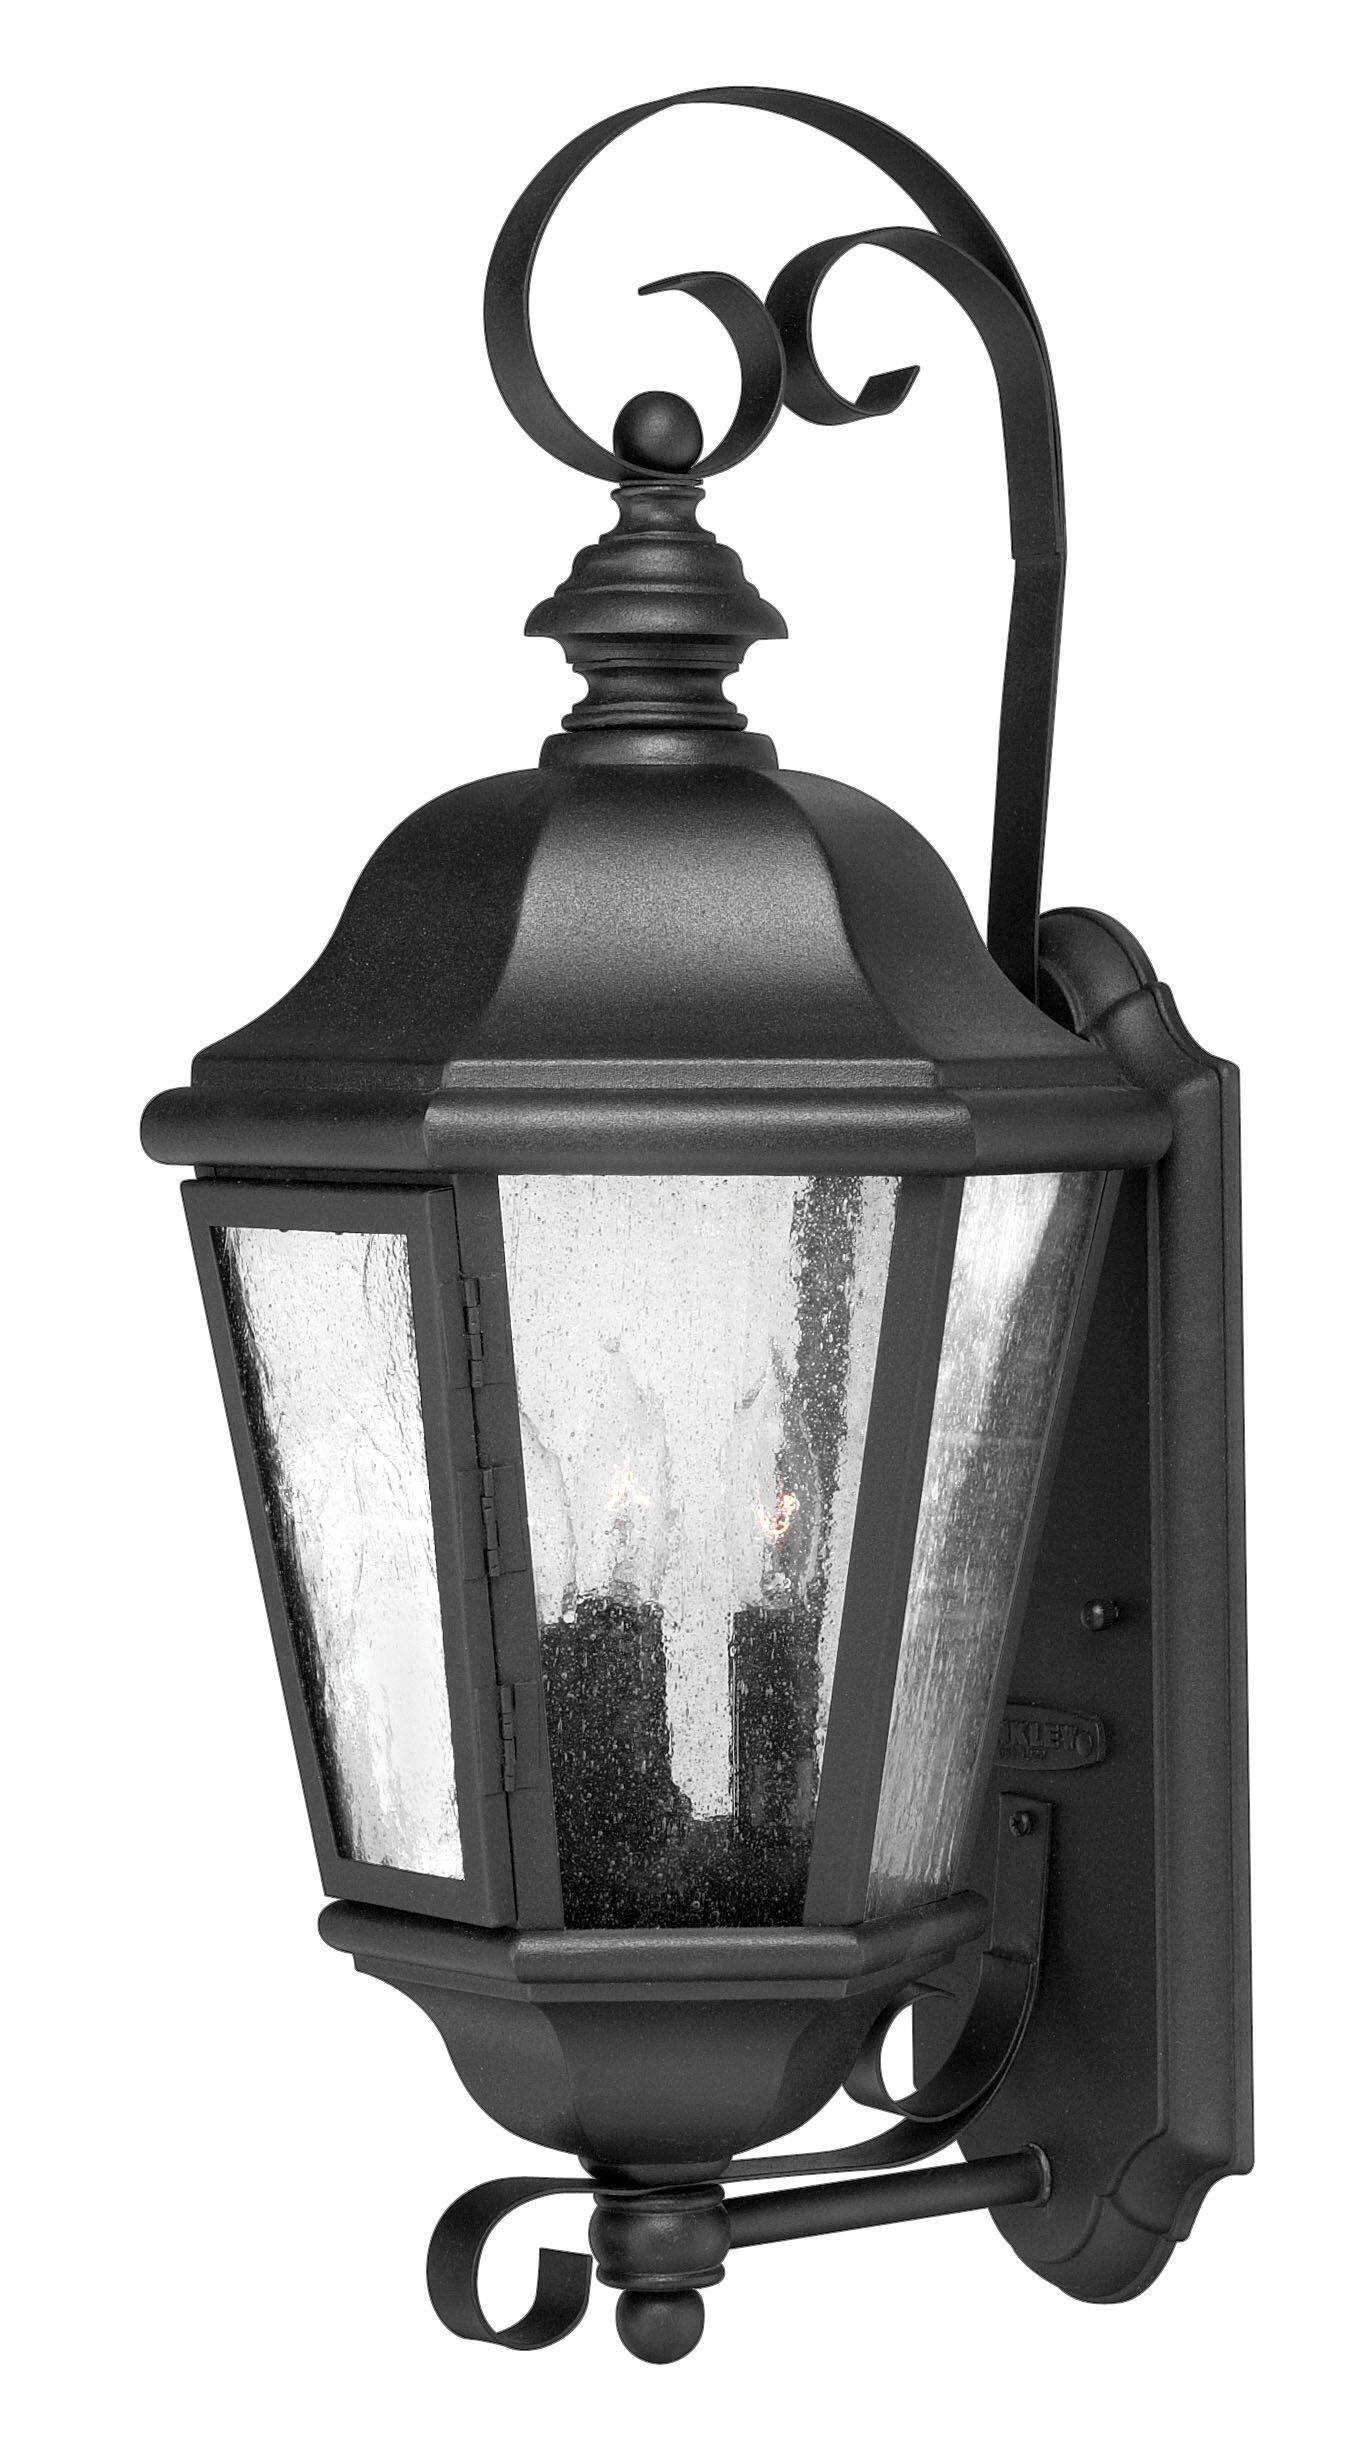 photocell up outdoor mounted contemporary fixtures mount design lowes awesome sconce and plug candle wall size polished down sconces types of new lighting ideas garage led modern nickel lights elegances full exterior light in coach patio with